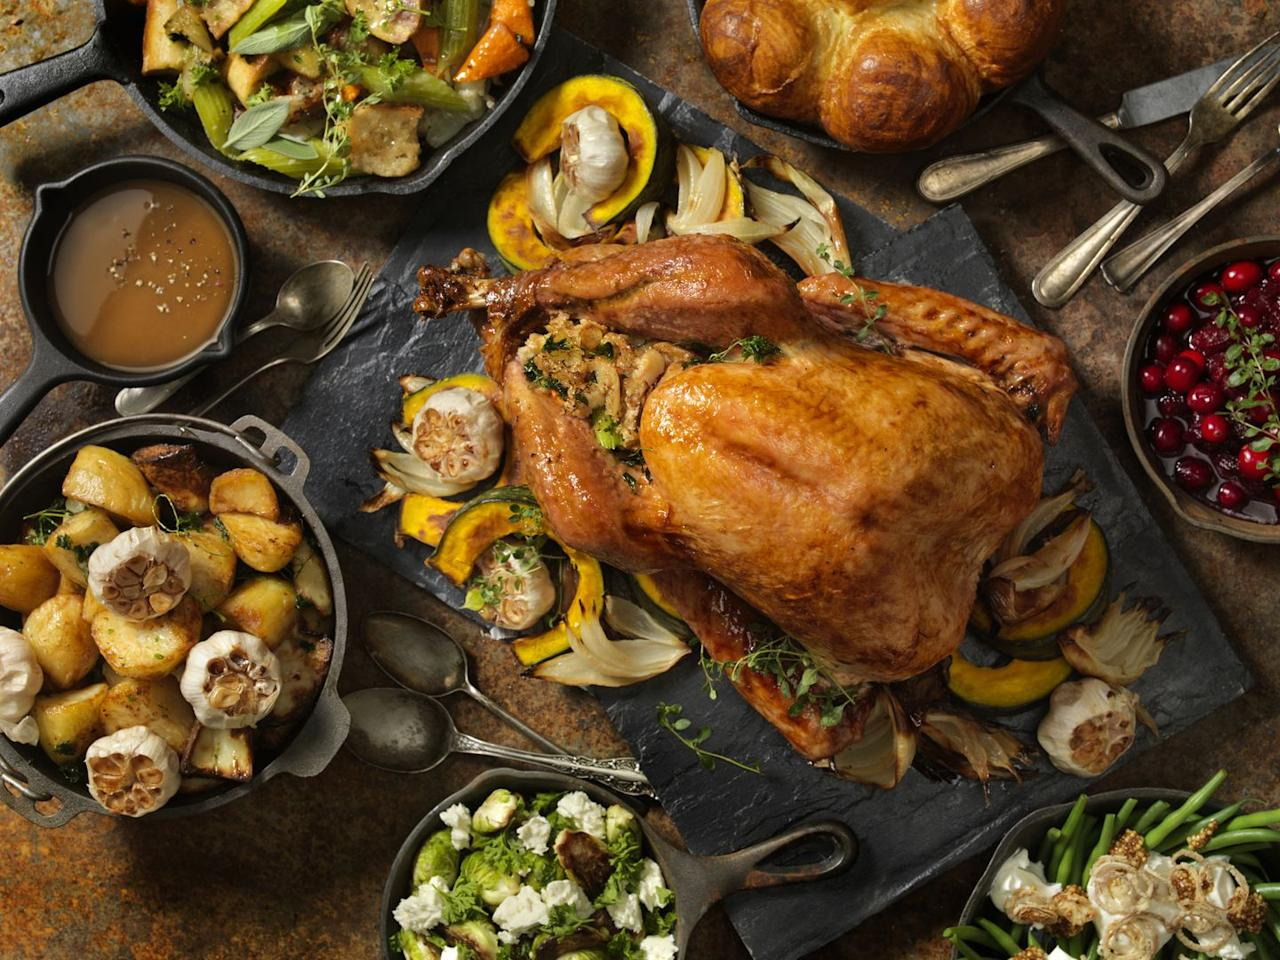 """<p>Roasted turkey is a classic for a reason: it's a fan favorite, and when it's cooked the right way, it's delicious. Plus, it's relatively simple. A roasted turkey cooked at the right temperature with the correct amount of seasoning can be juicy on the inside with a nicely crisped skin.</p><p>Get the recipe from <a href=""""https://www.delish.com/holiday-recipes/thanksgiving/a55338/best-oven-roast-turkey-recipe/"""" target=""""_blank"""">Delish</a>.</p>"""